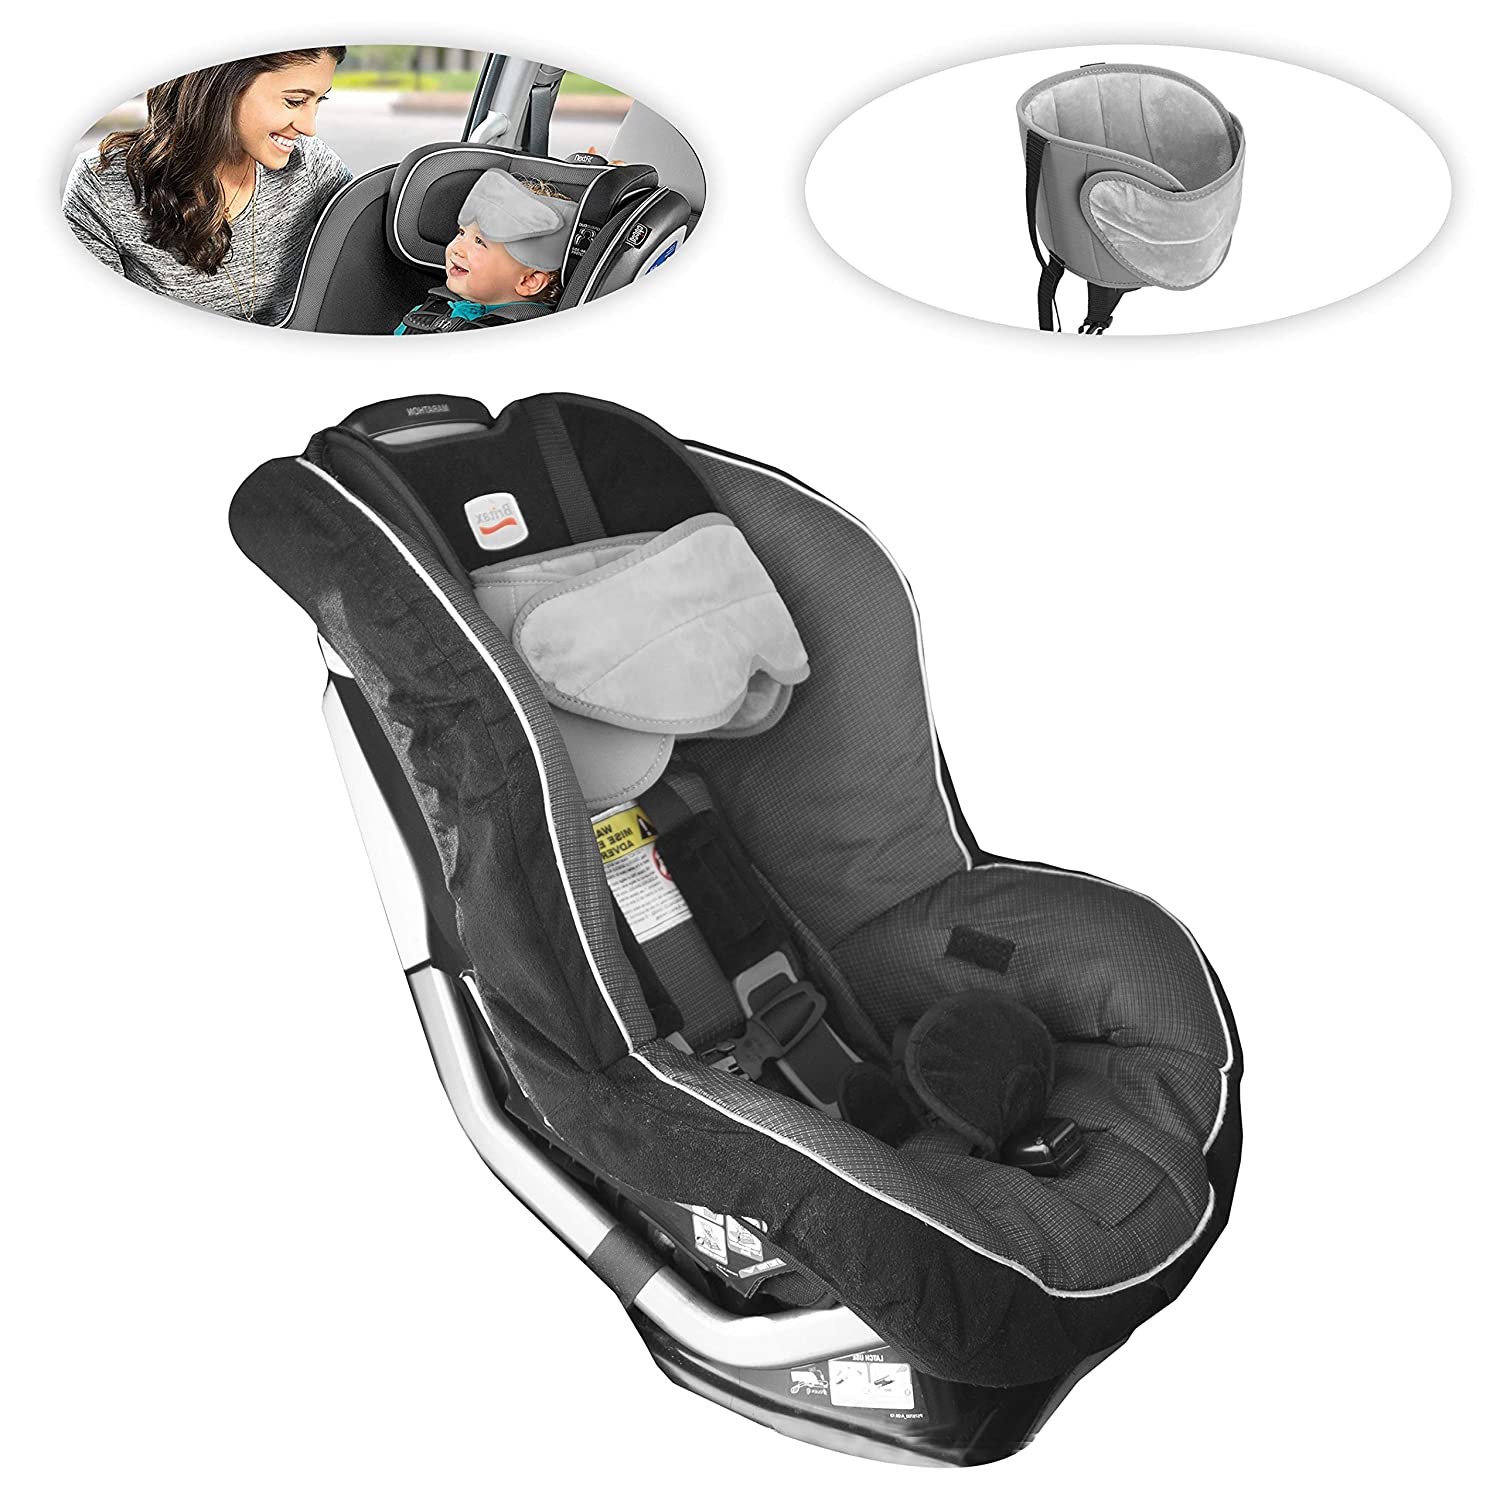 lebogner Car Seat Head Support Band, Adjustable Children Headrest Strap For Head And Neck Relief, Comfortable Baby and Toddler Head Holder, Kids Belt For Safe Sleeping In the Car Seat And Booster Seat